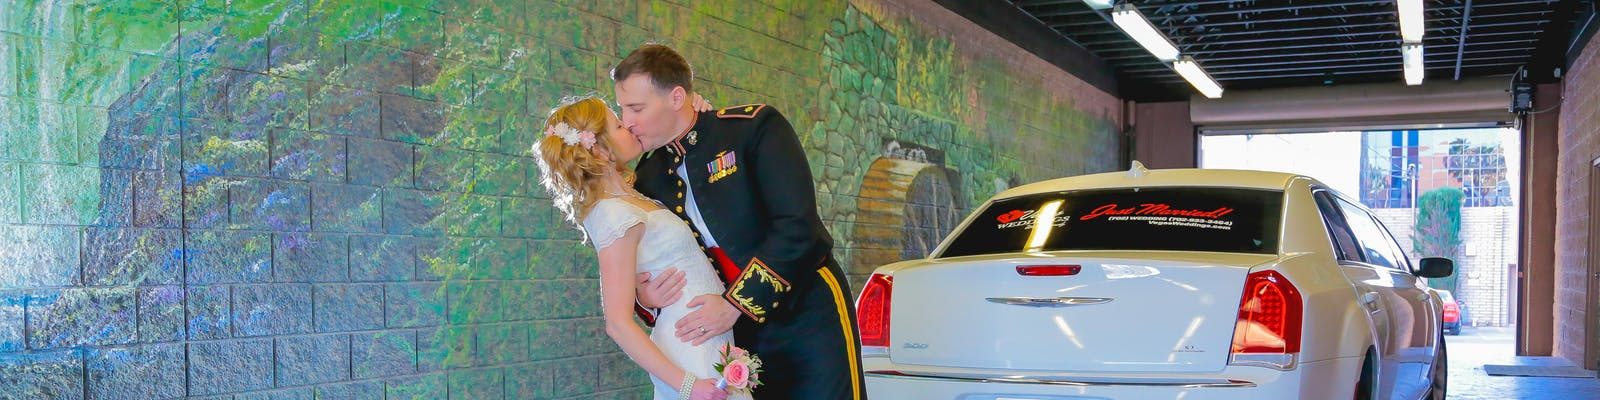 Groom dips bride for a kiss in front of the limo,